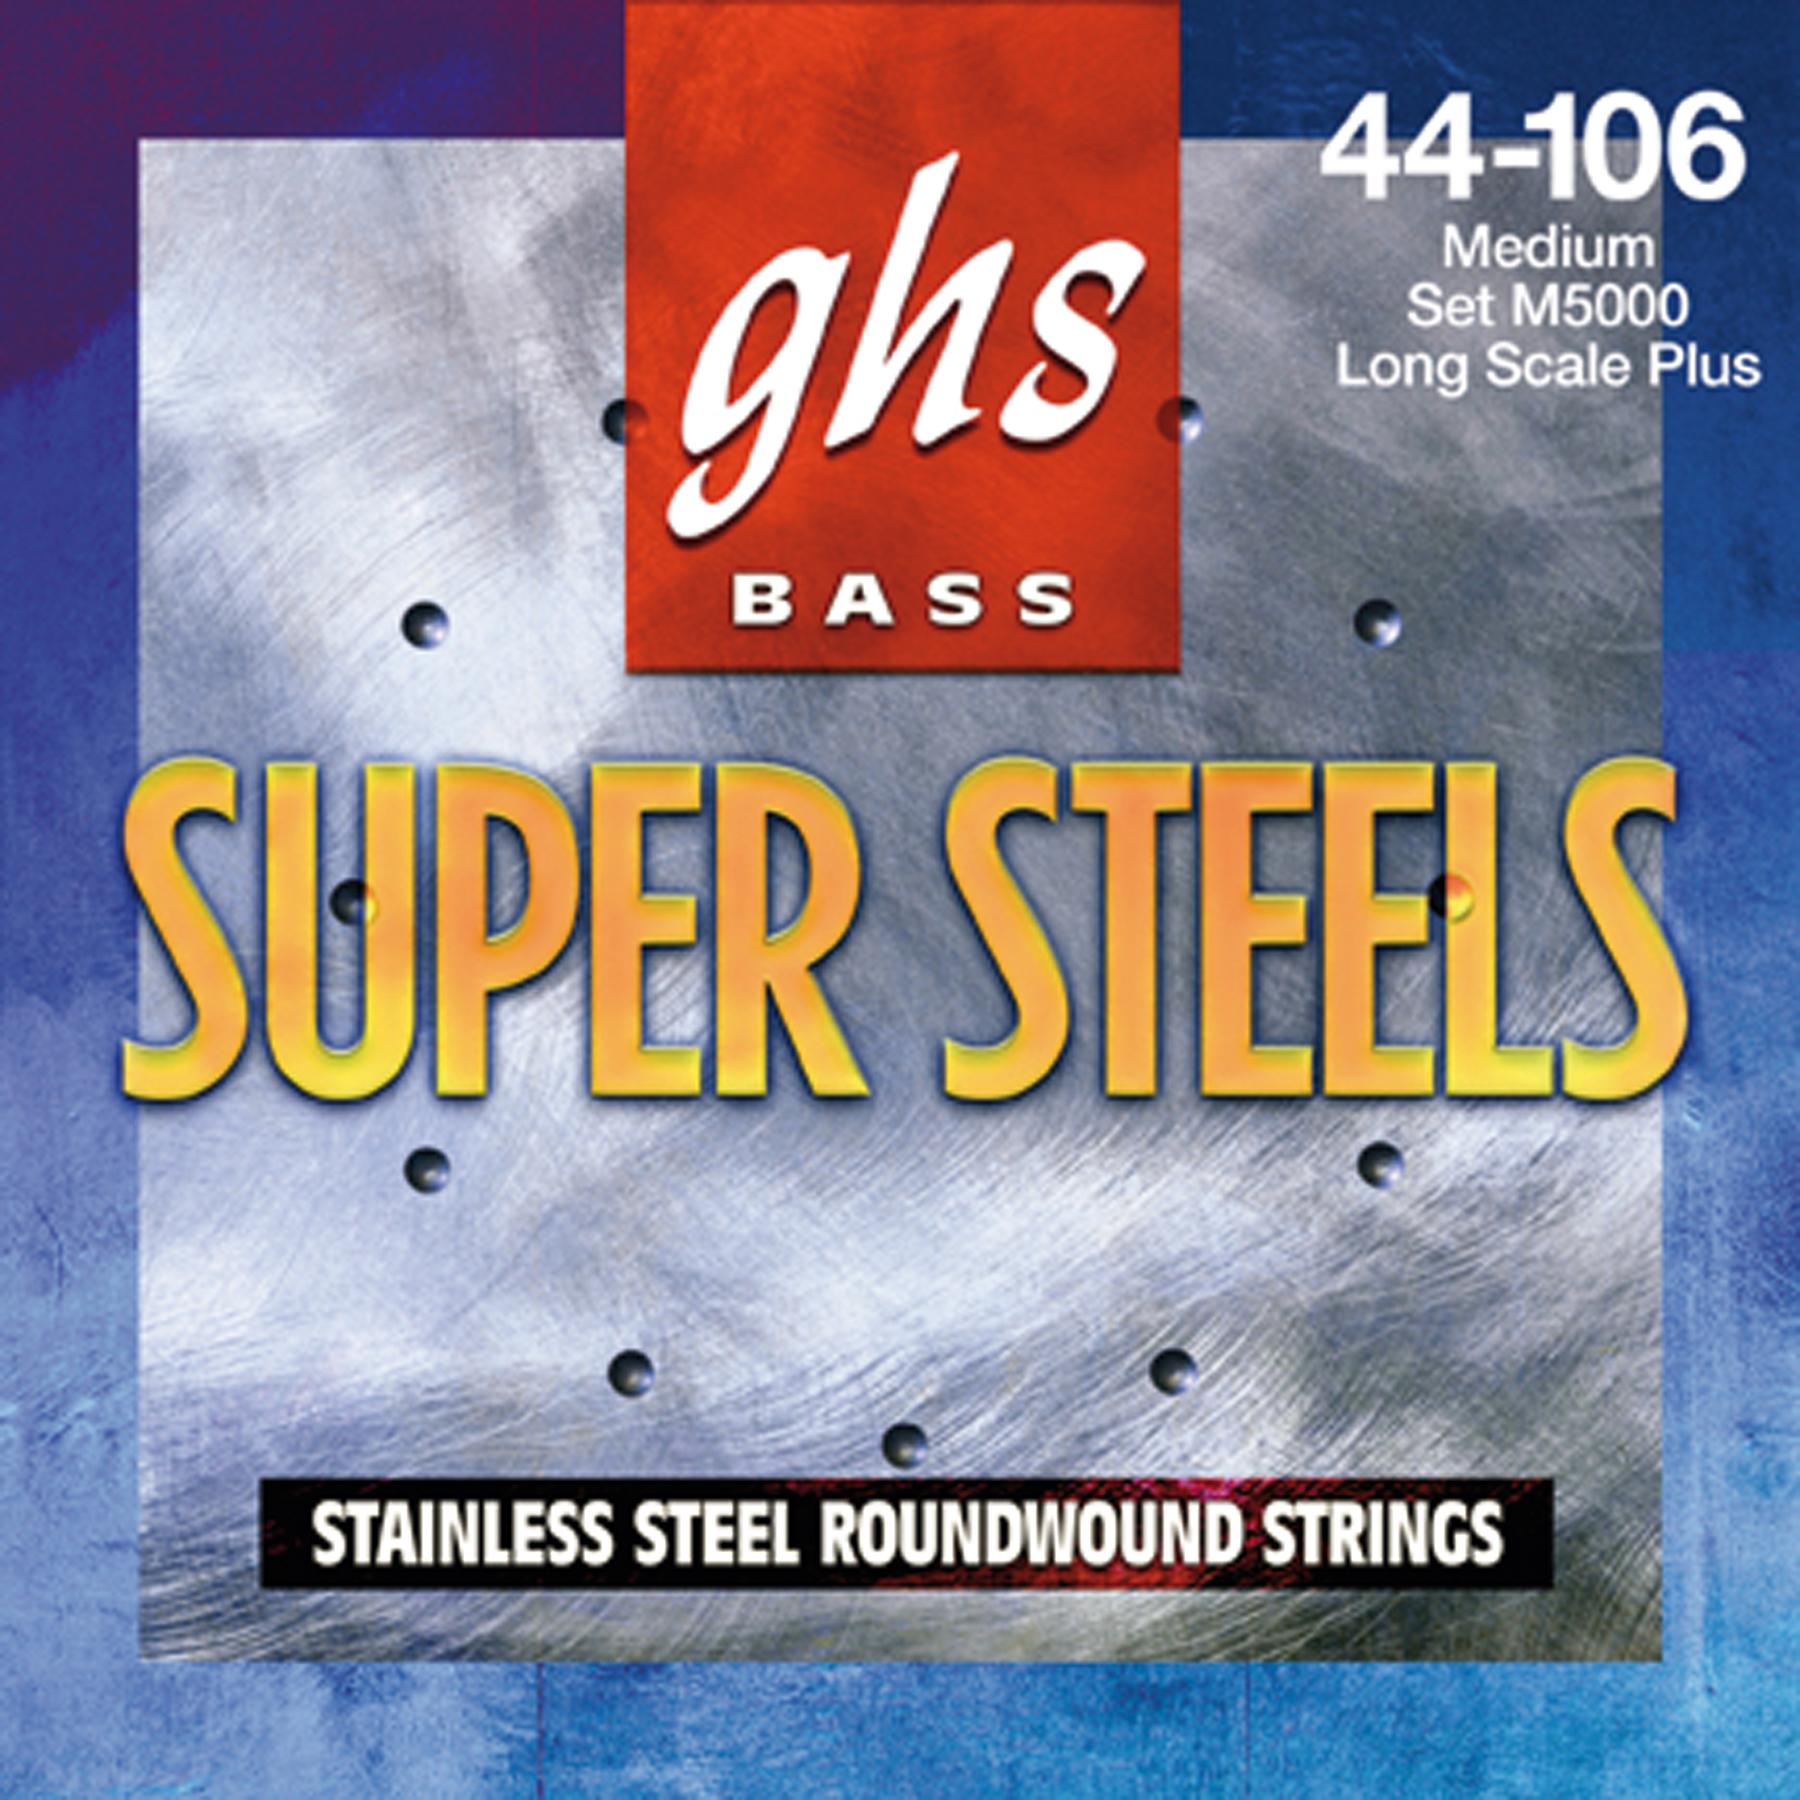 STB58 Rivestita Super Steel